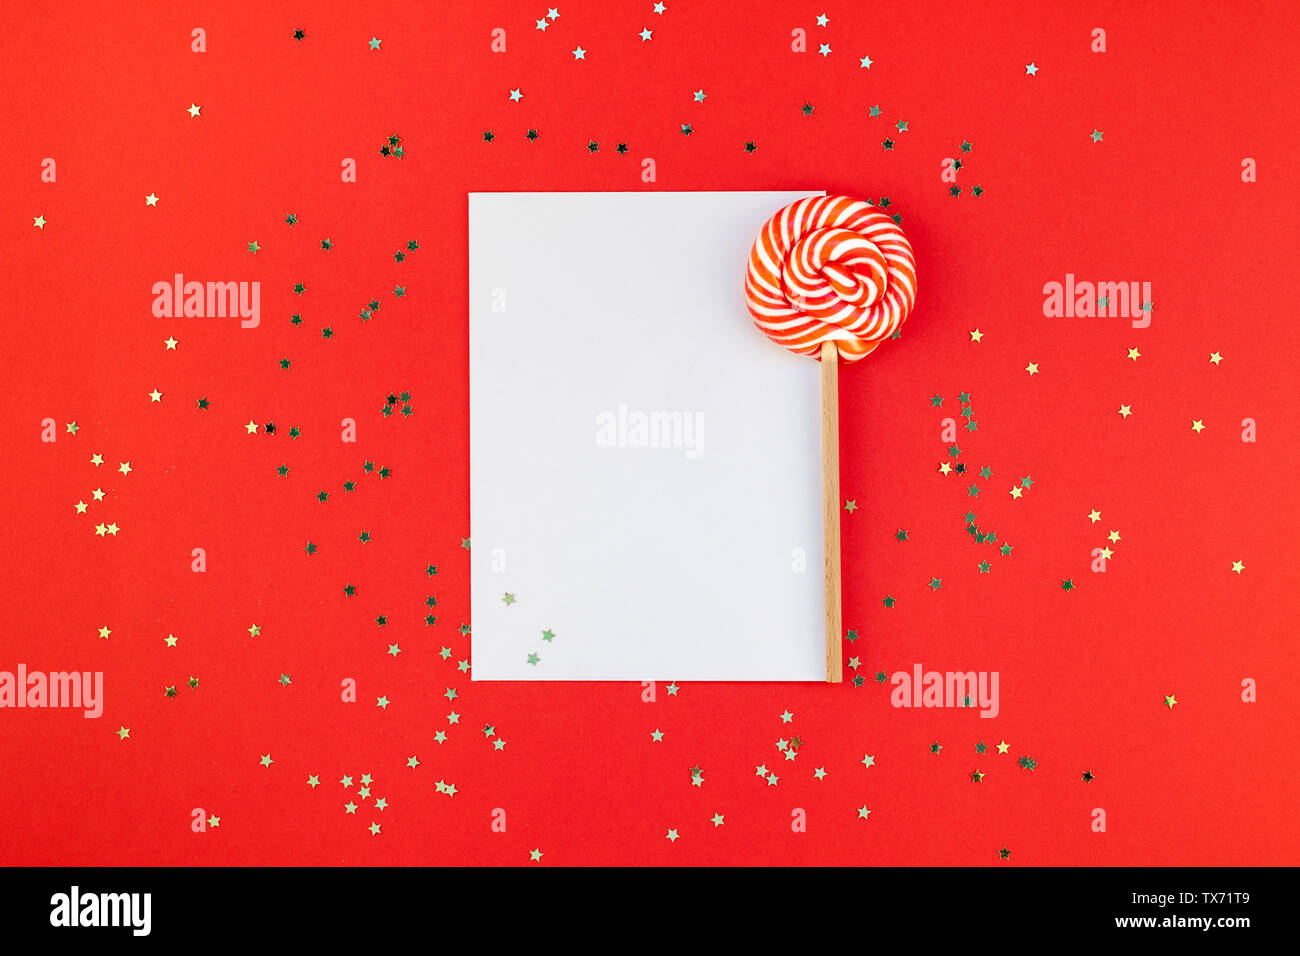 Creative New Year or Christmas greetings letter mockup flat lay top view Xmas holiday celebration envelope on red paper background golden glitter. Tem - Stock Image